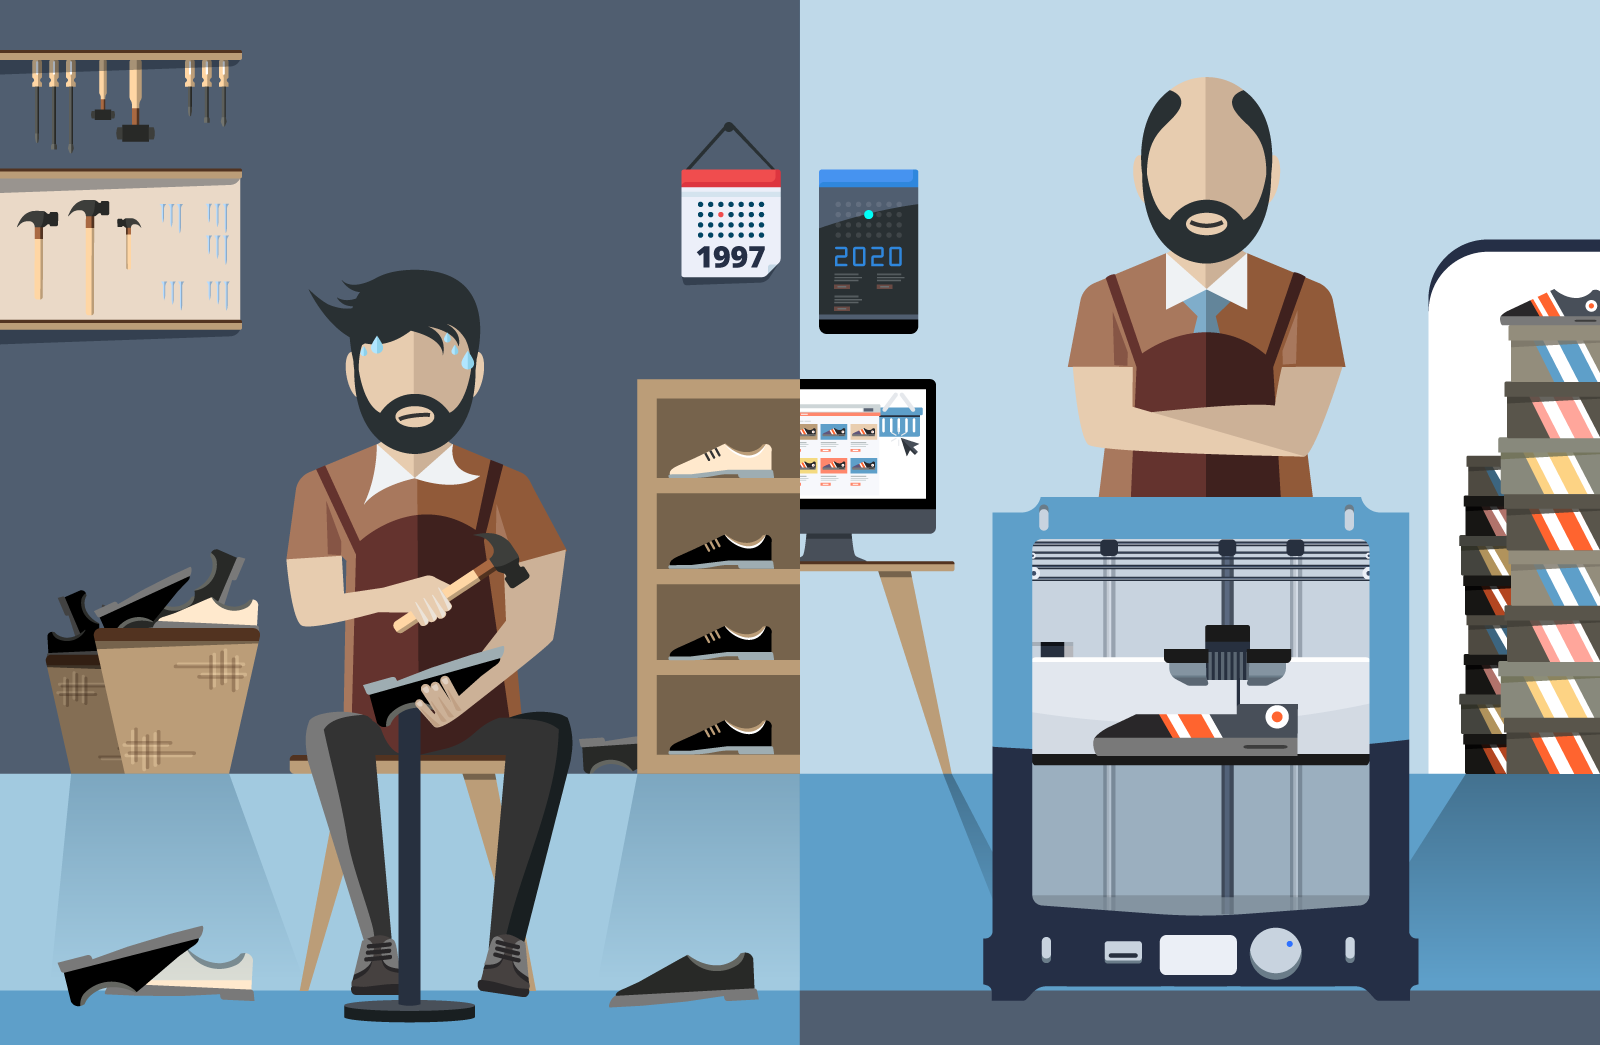 even a shoemaker can digitize his business